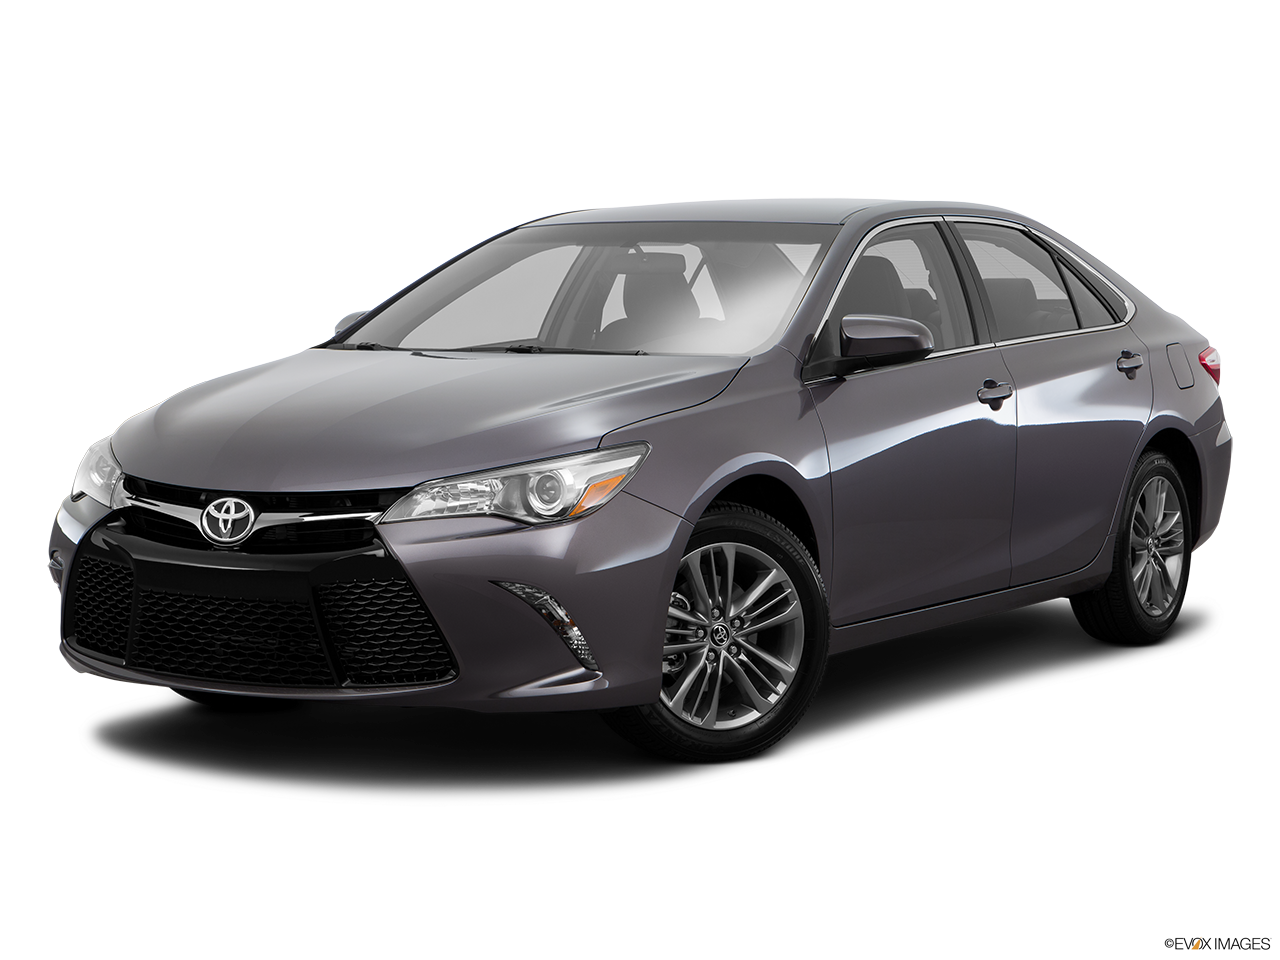 2016 toyota camry hampton roads casey toyota casey toyota. Black Bedroom Furniture Sets. Home Design Ideas